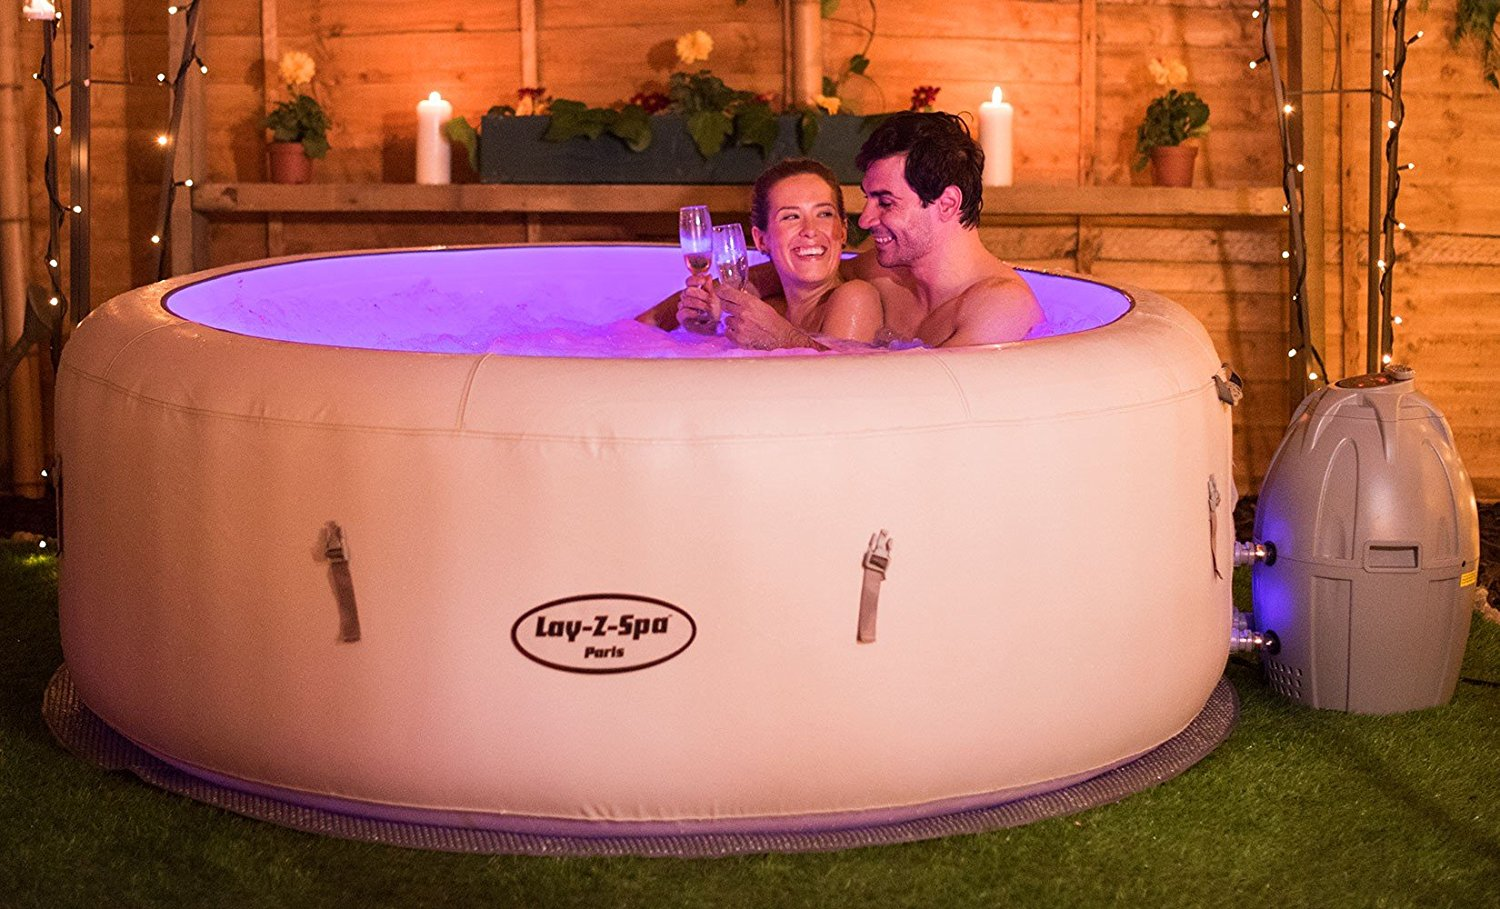 Bestway lay z spa hot tub inflatable swimming pool saint for Floating swimming pool paris